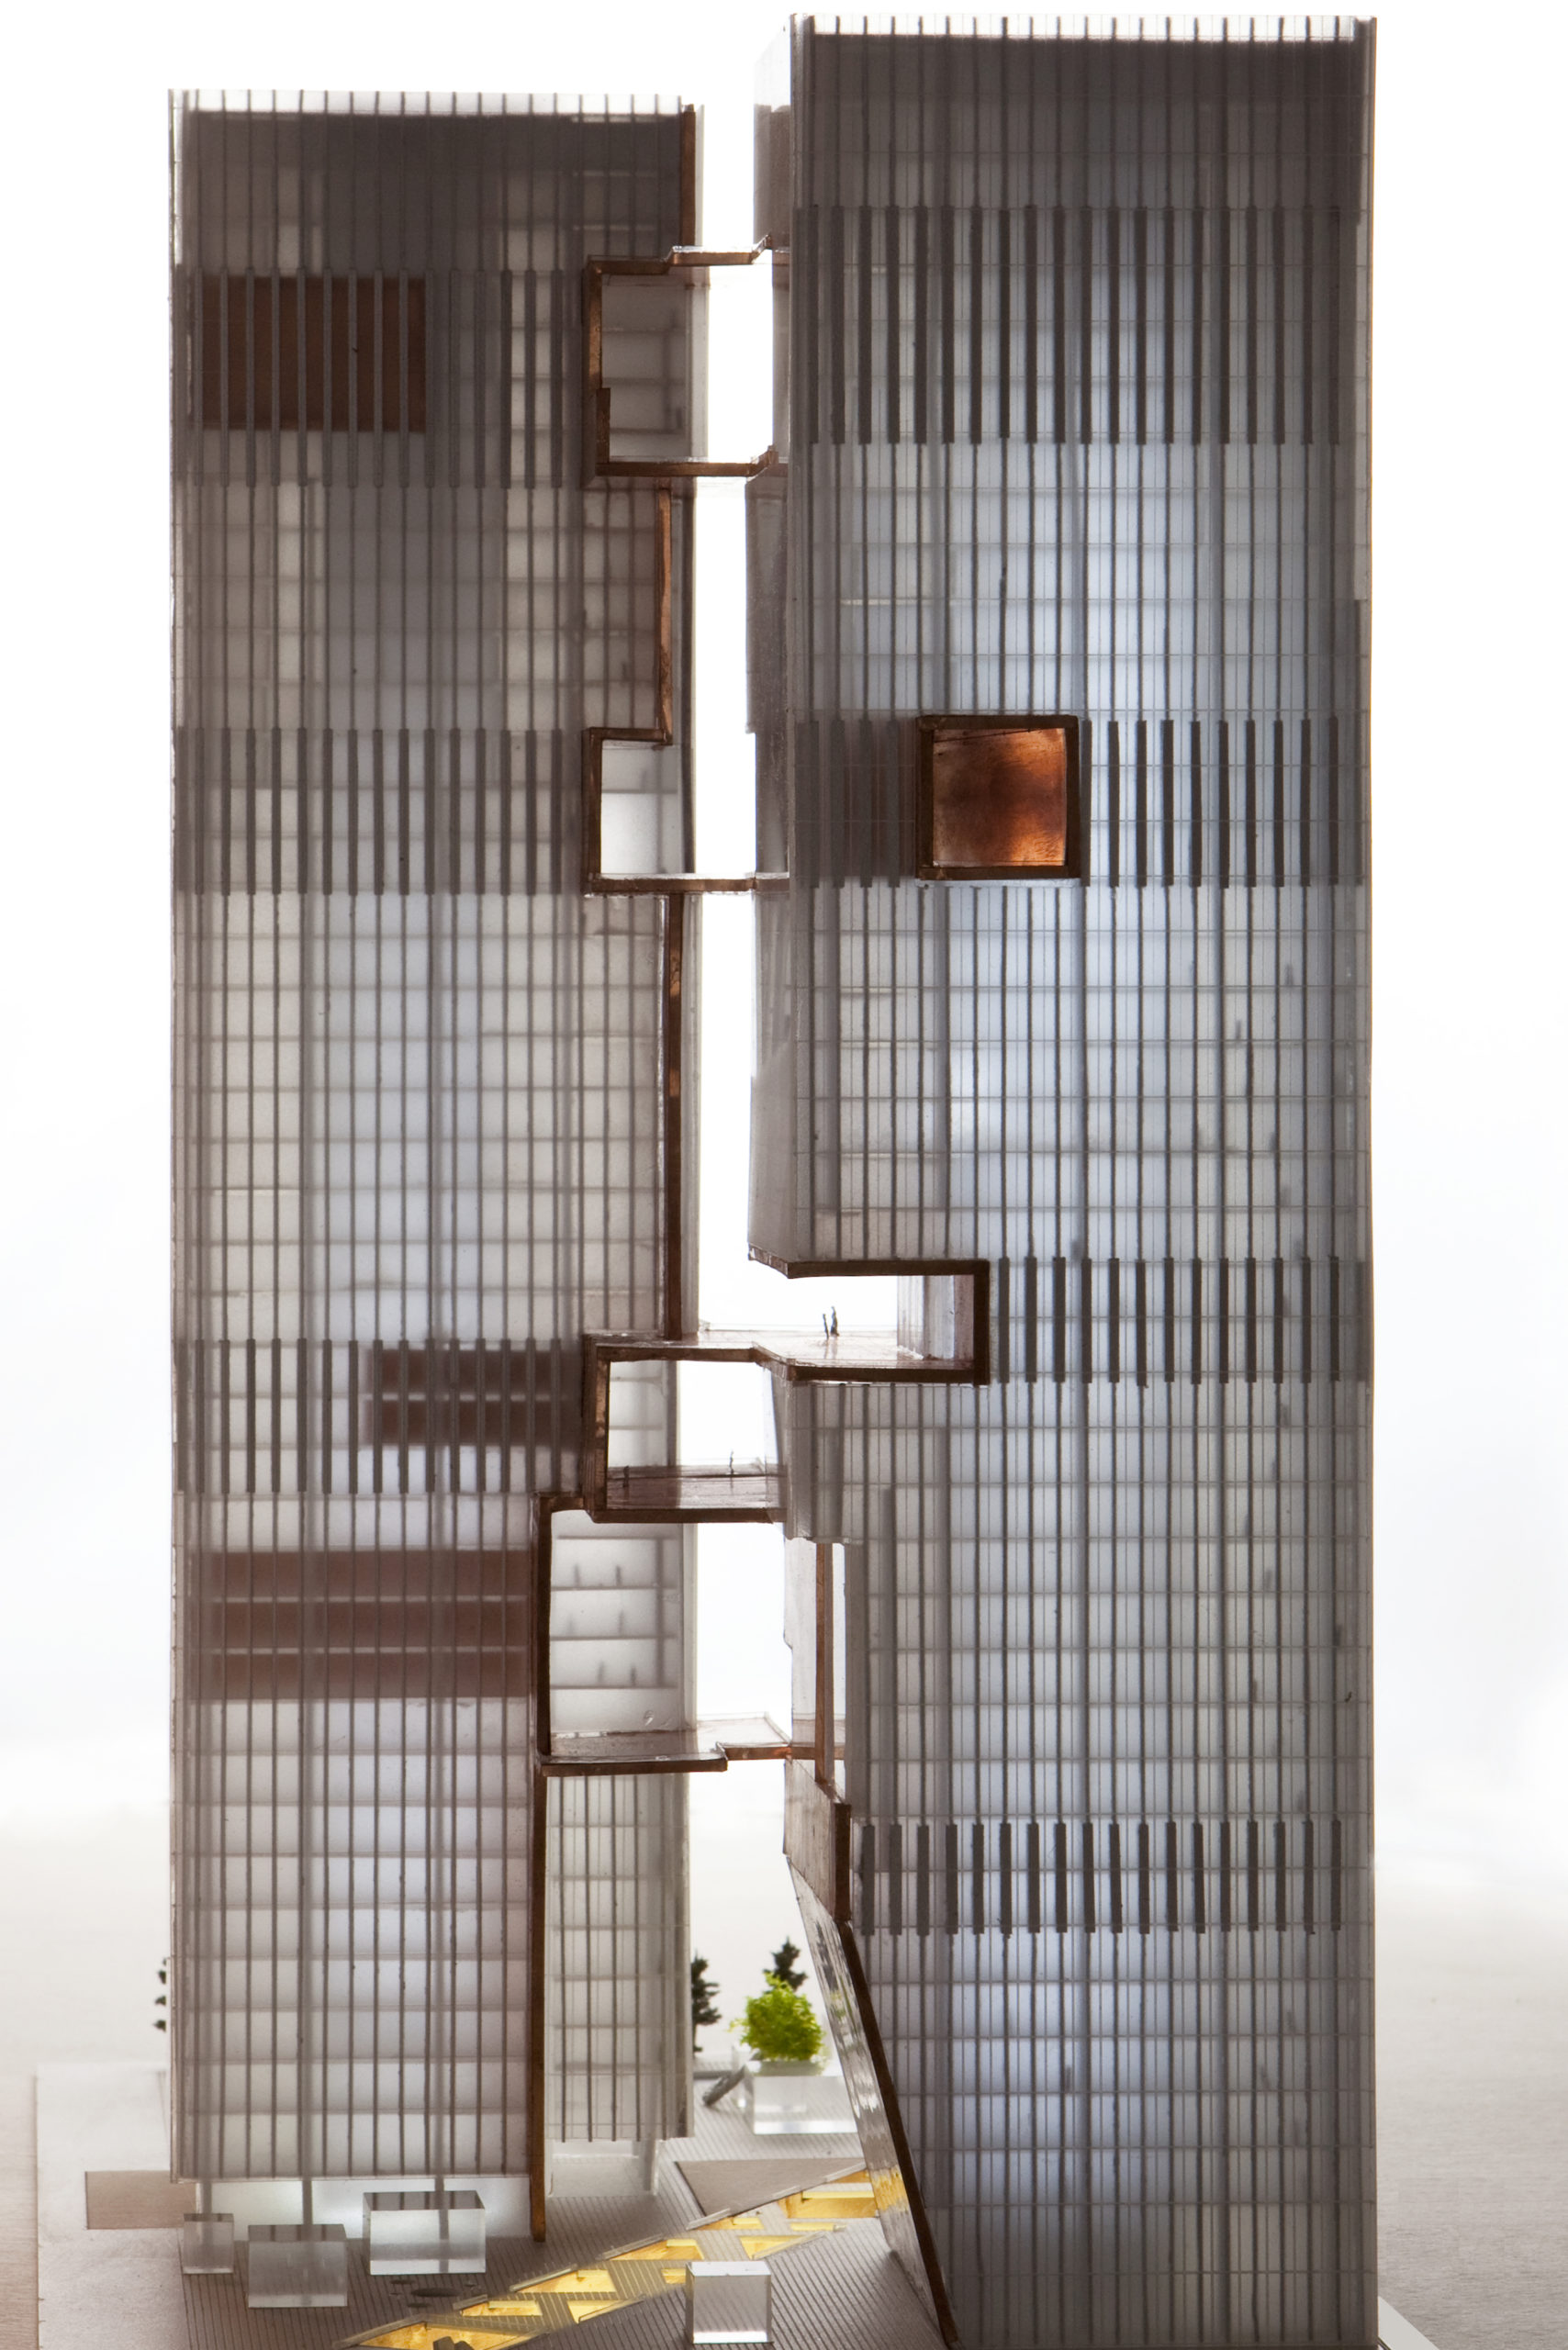 spatial practice architecture office Los Angeles Hong Kong ecospine twin towers cbd beijing china model twins